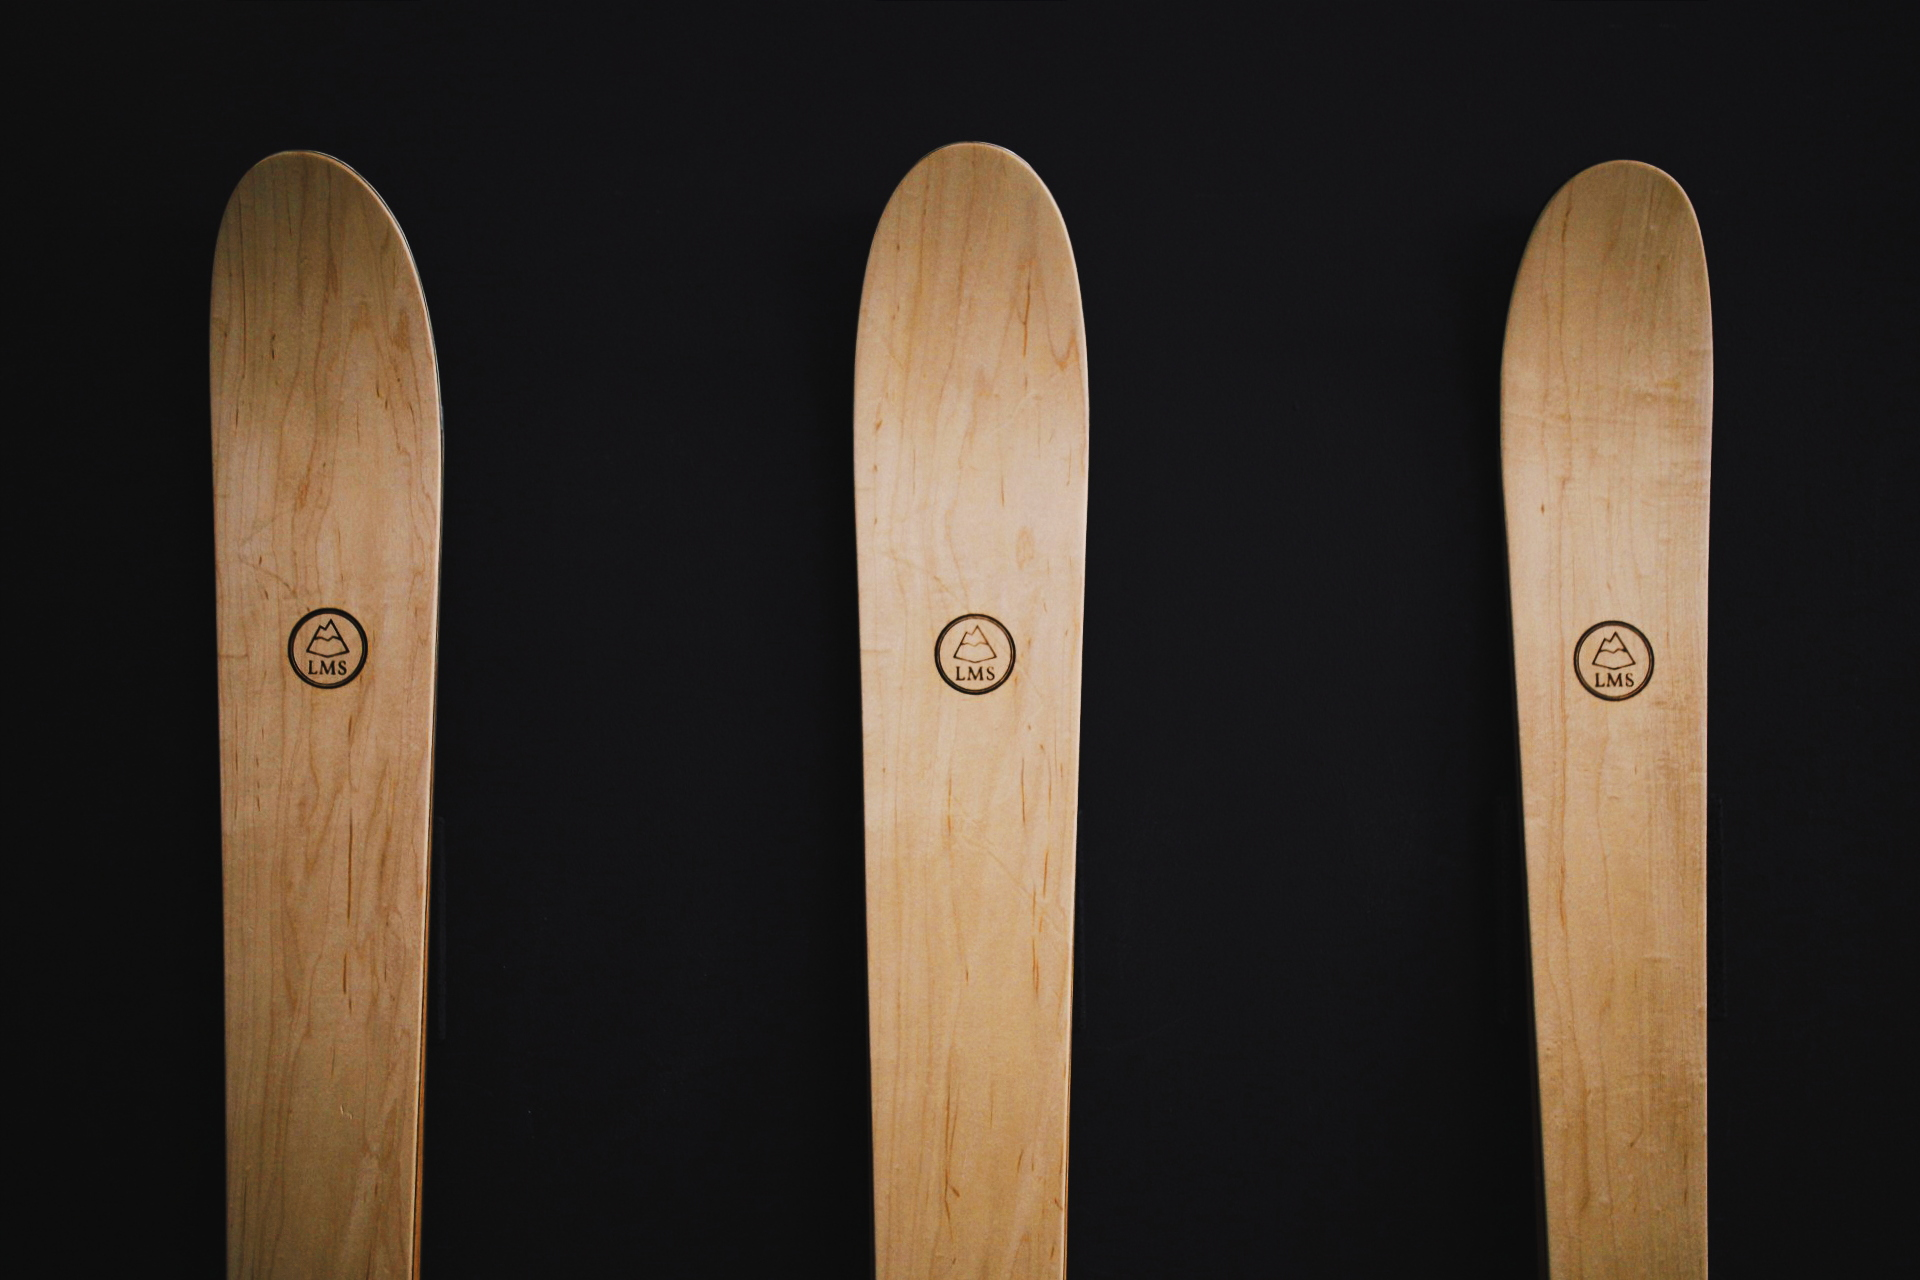 three beautiful wooden skis in a line against a black background